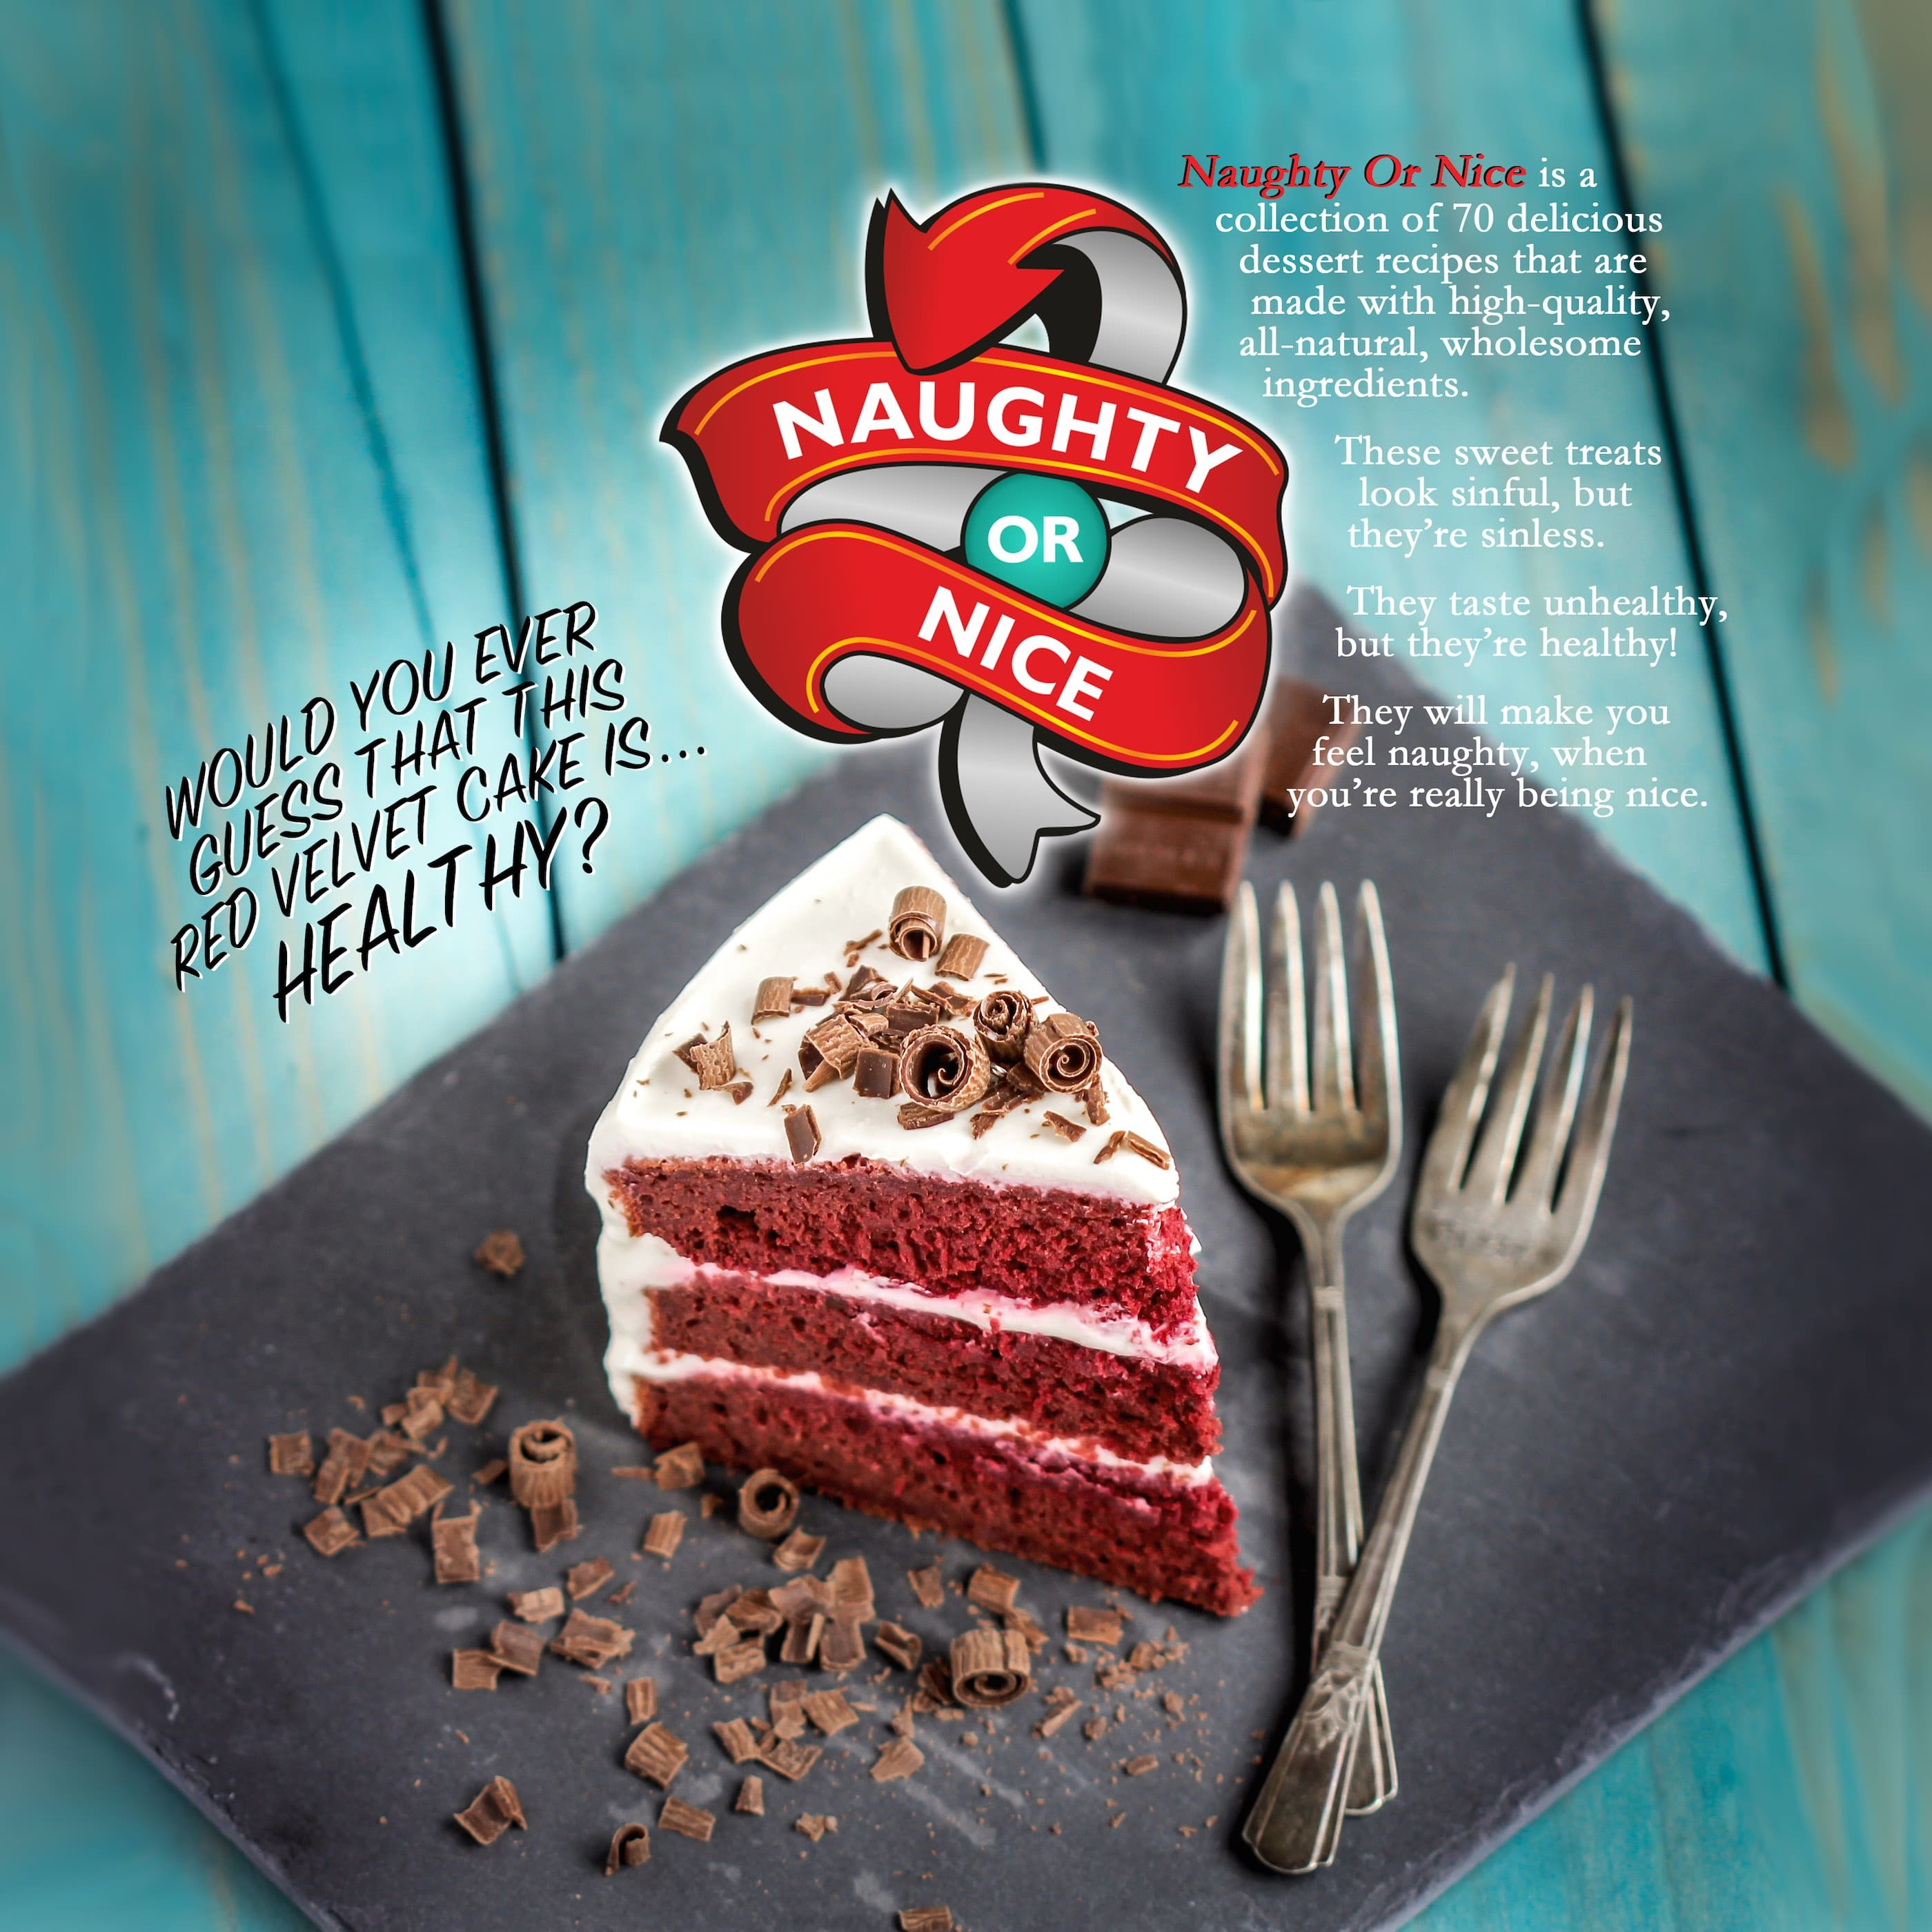 naughty nice cookbook